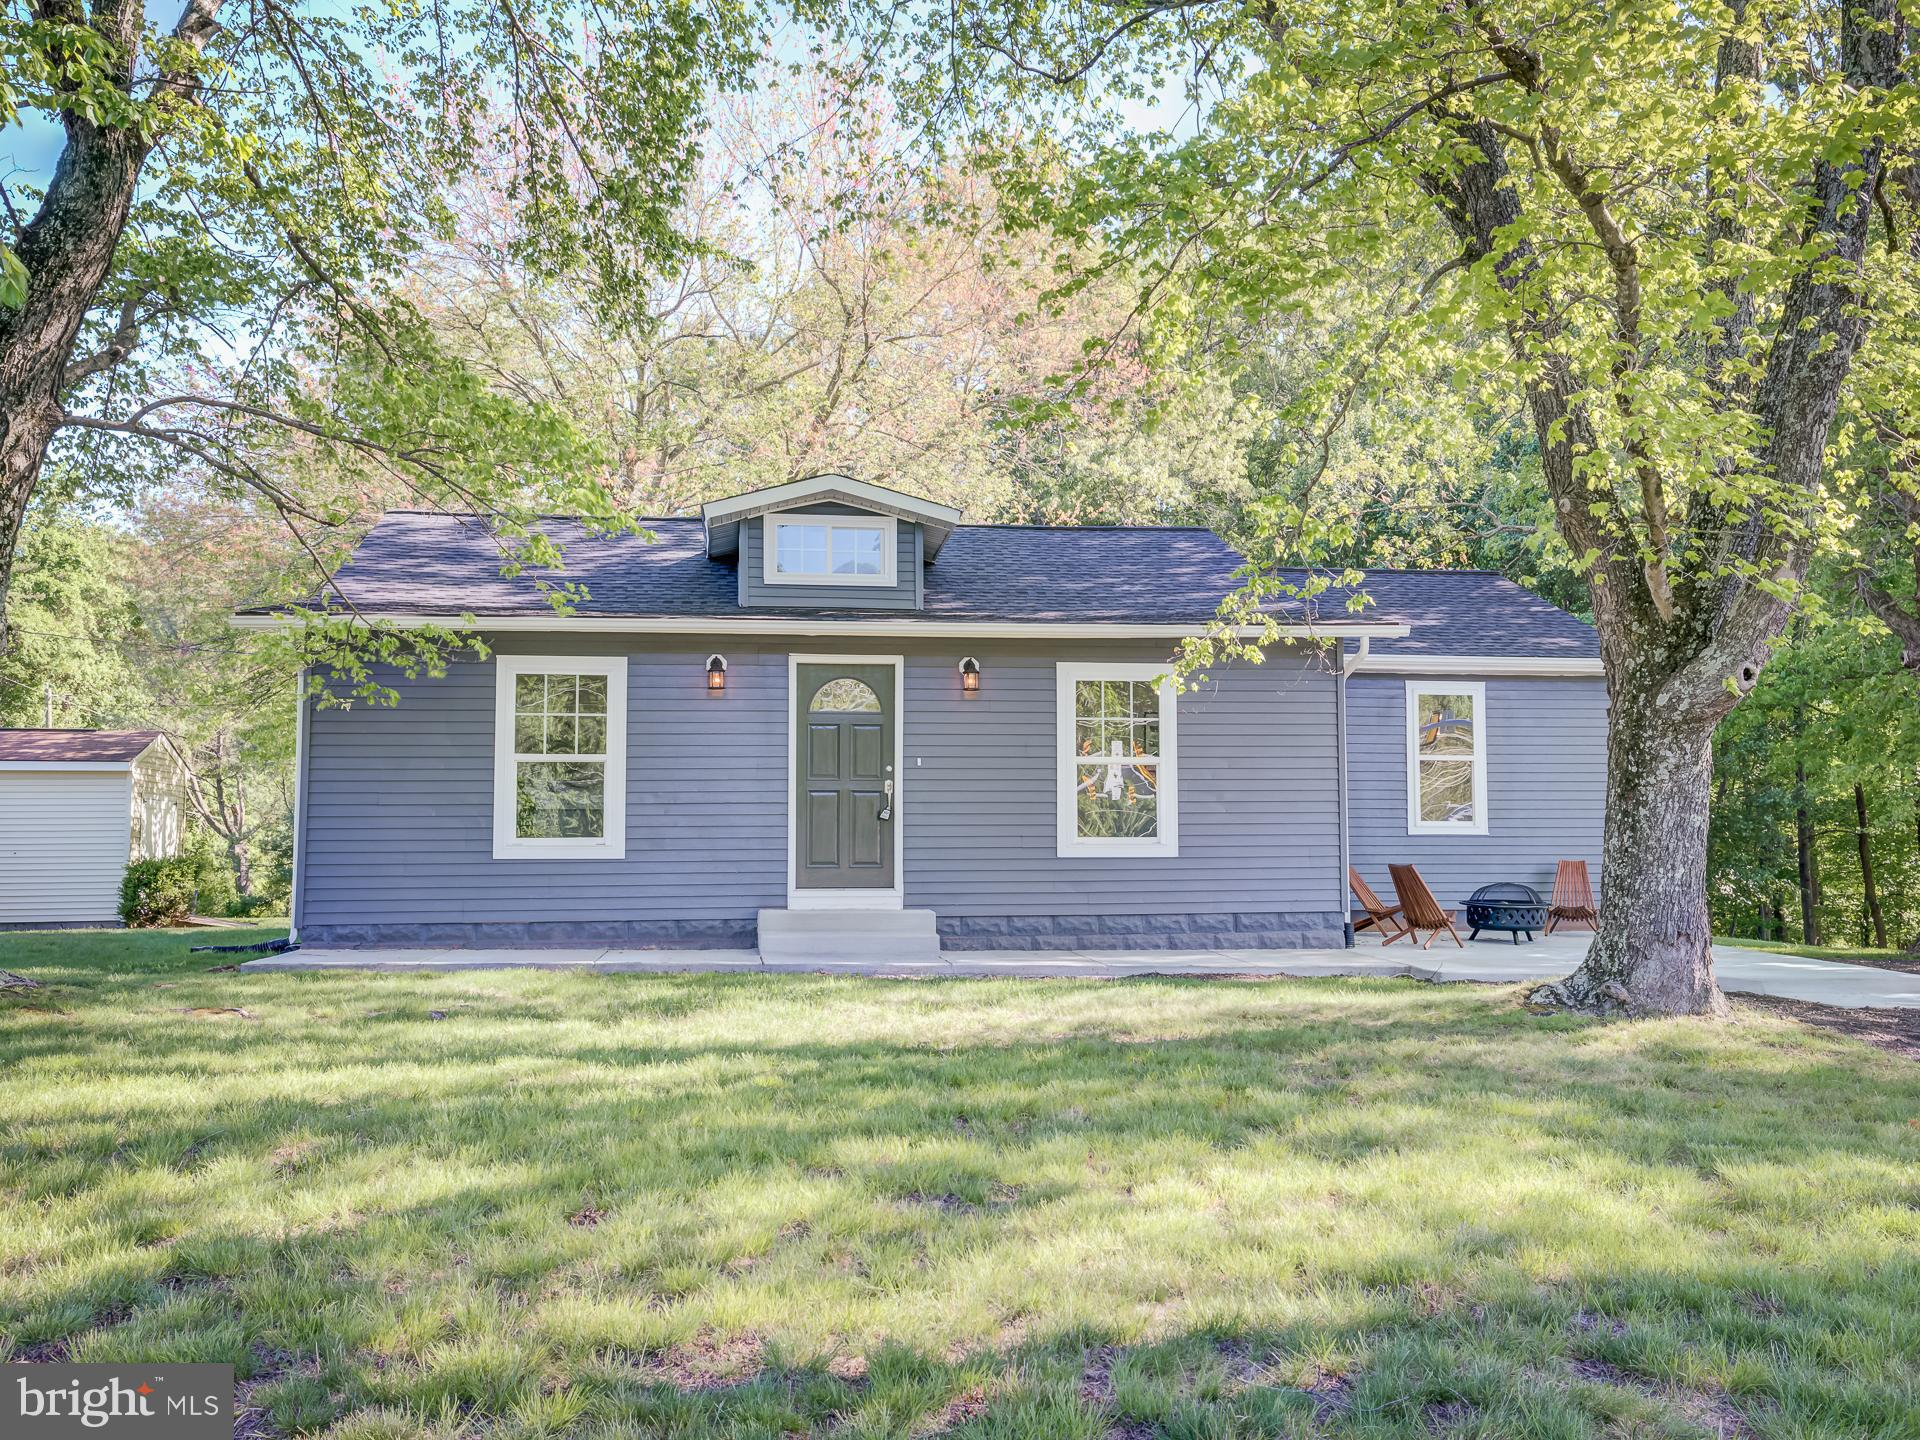 STUNNING RENOVATION! LOCATION, LOCATION, LOCATION!!! CORNER OF MINNIEVILLE RD AND DUMFRIES RD! 3BR'S